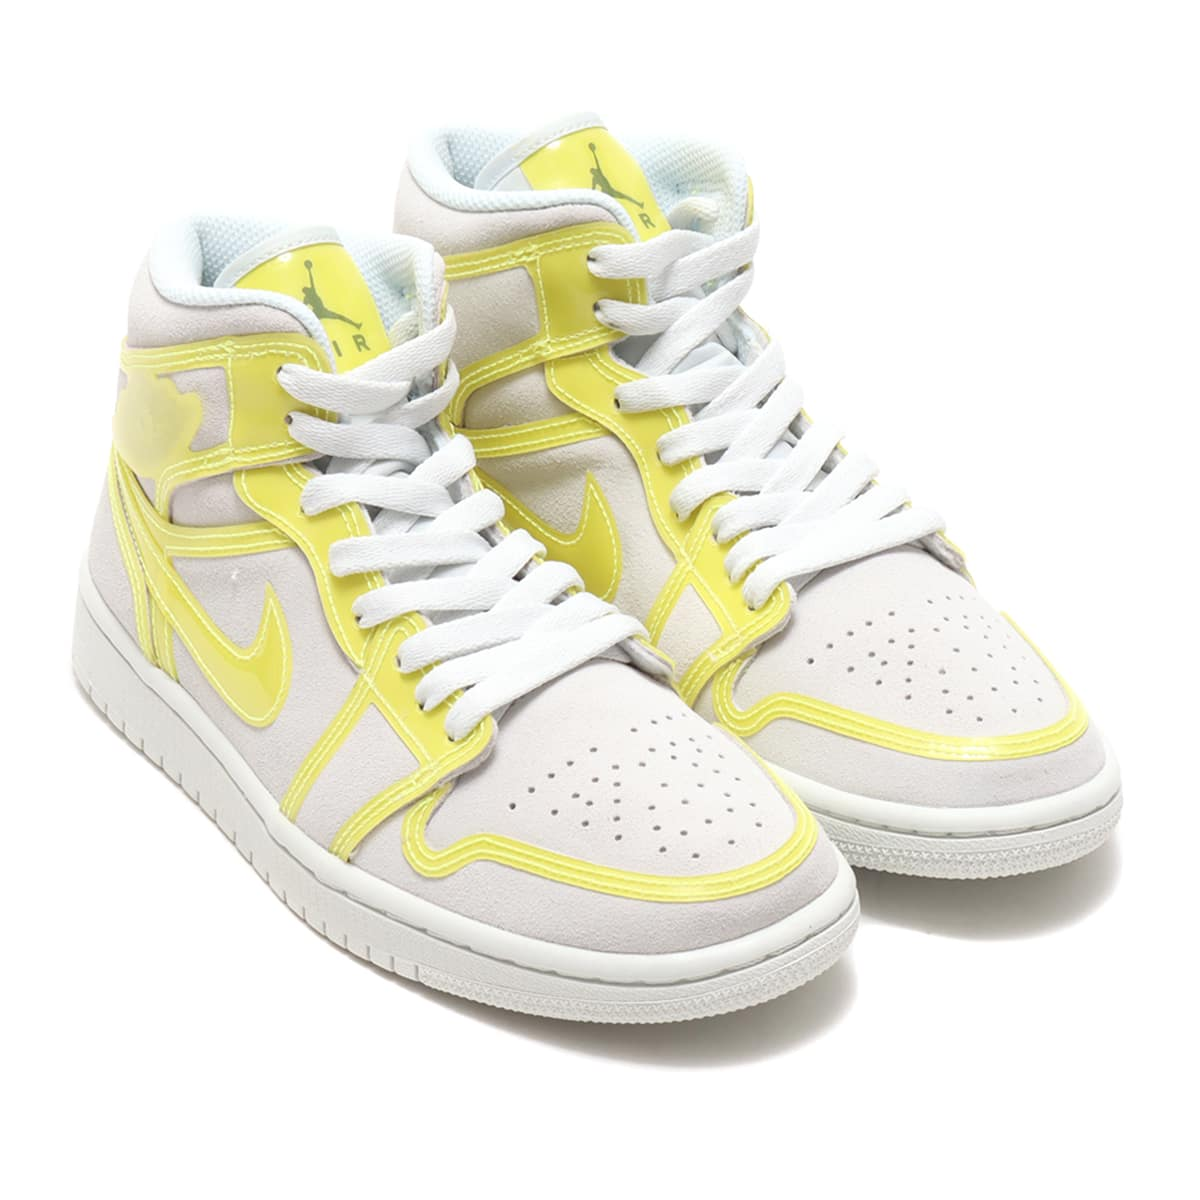 JORDAN BRAND WMNS AIR JORDAN 1 MID LX OFF WHITE/OPTI YELLOW-WHITE 21SP-I_photo_large